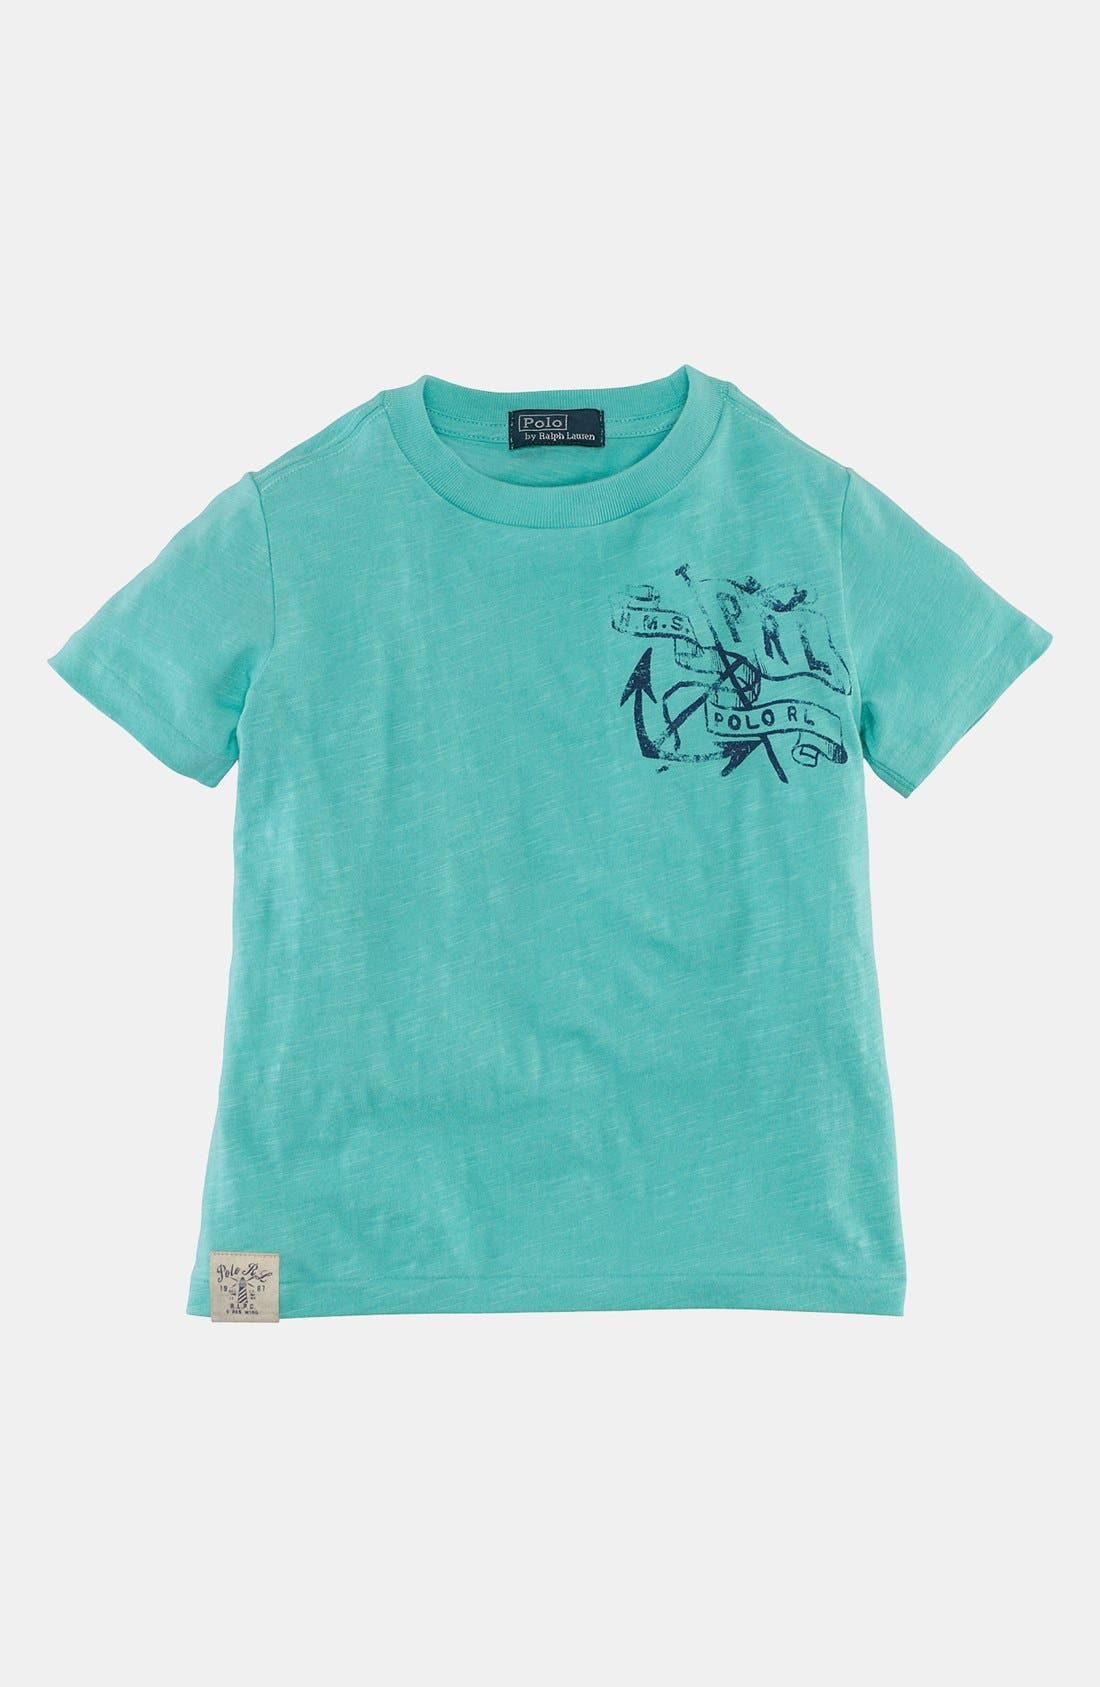 Main Image - Polo Ralph Lauren T-Shirt (Toddler Boys)